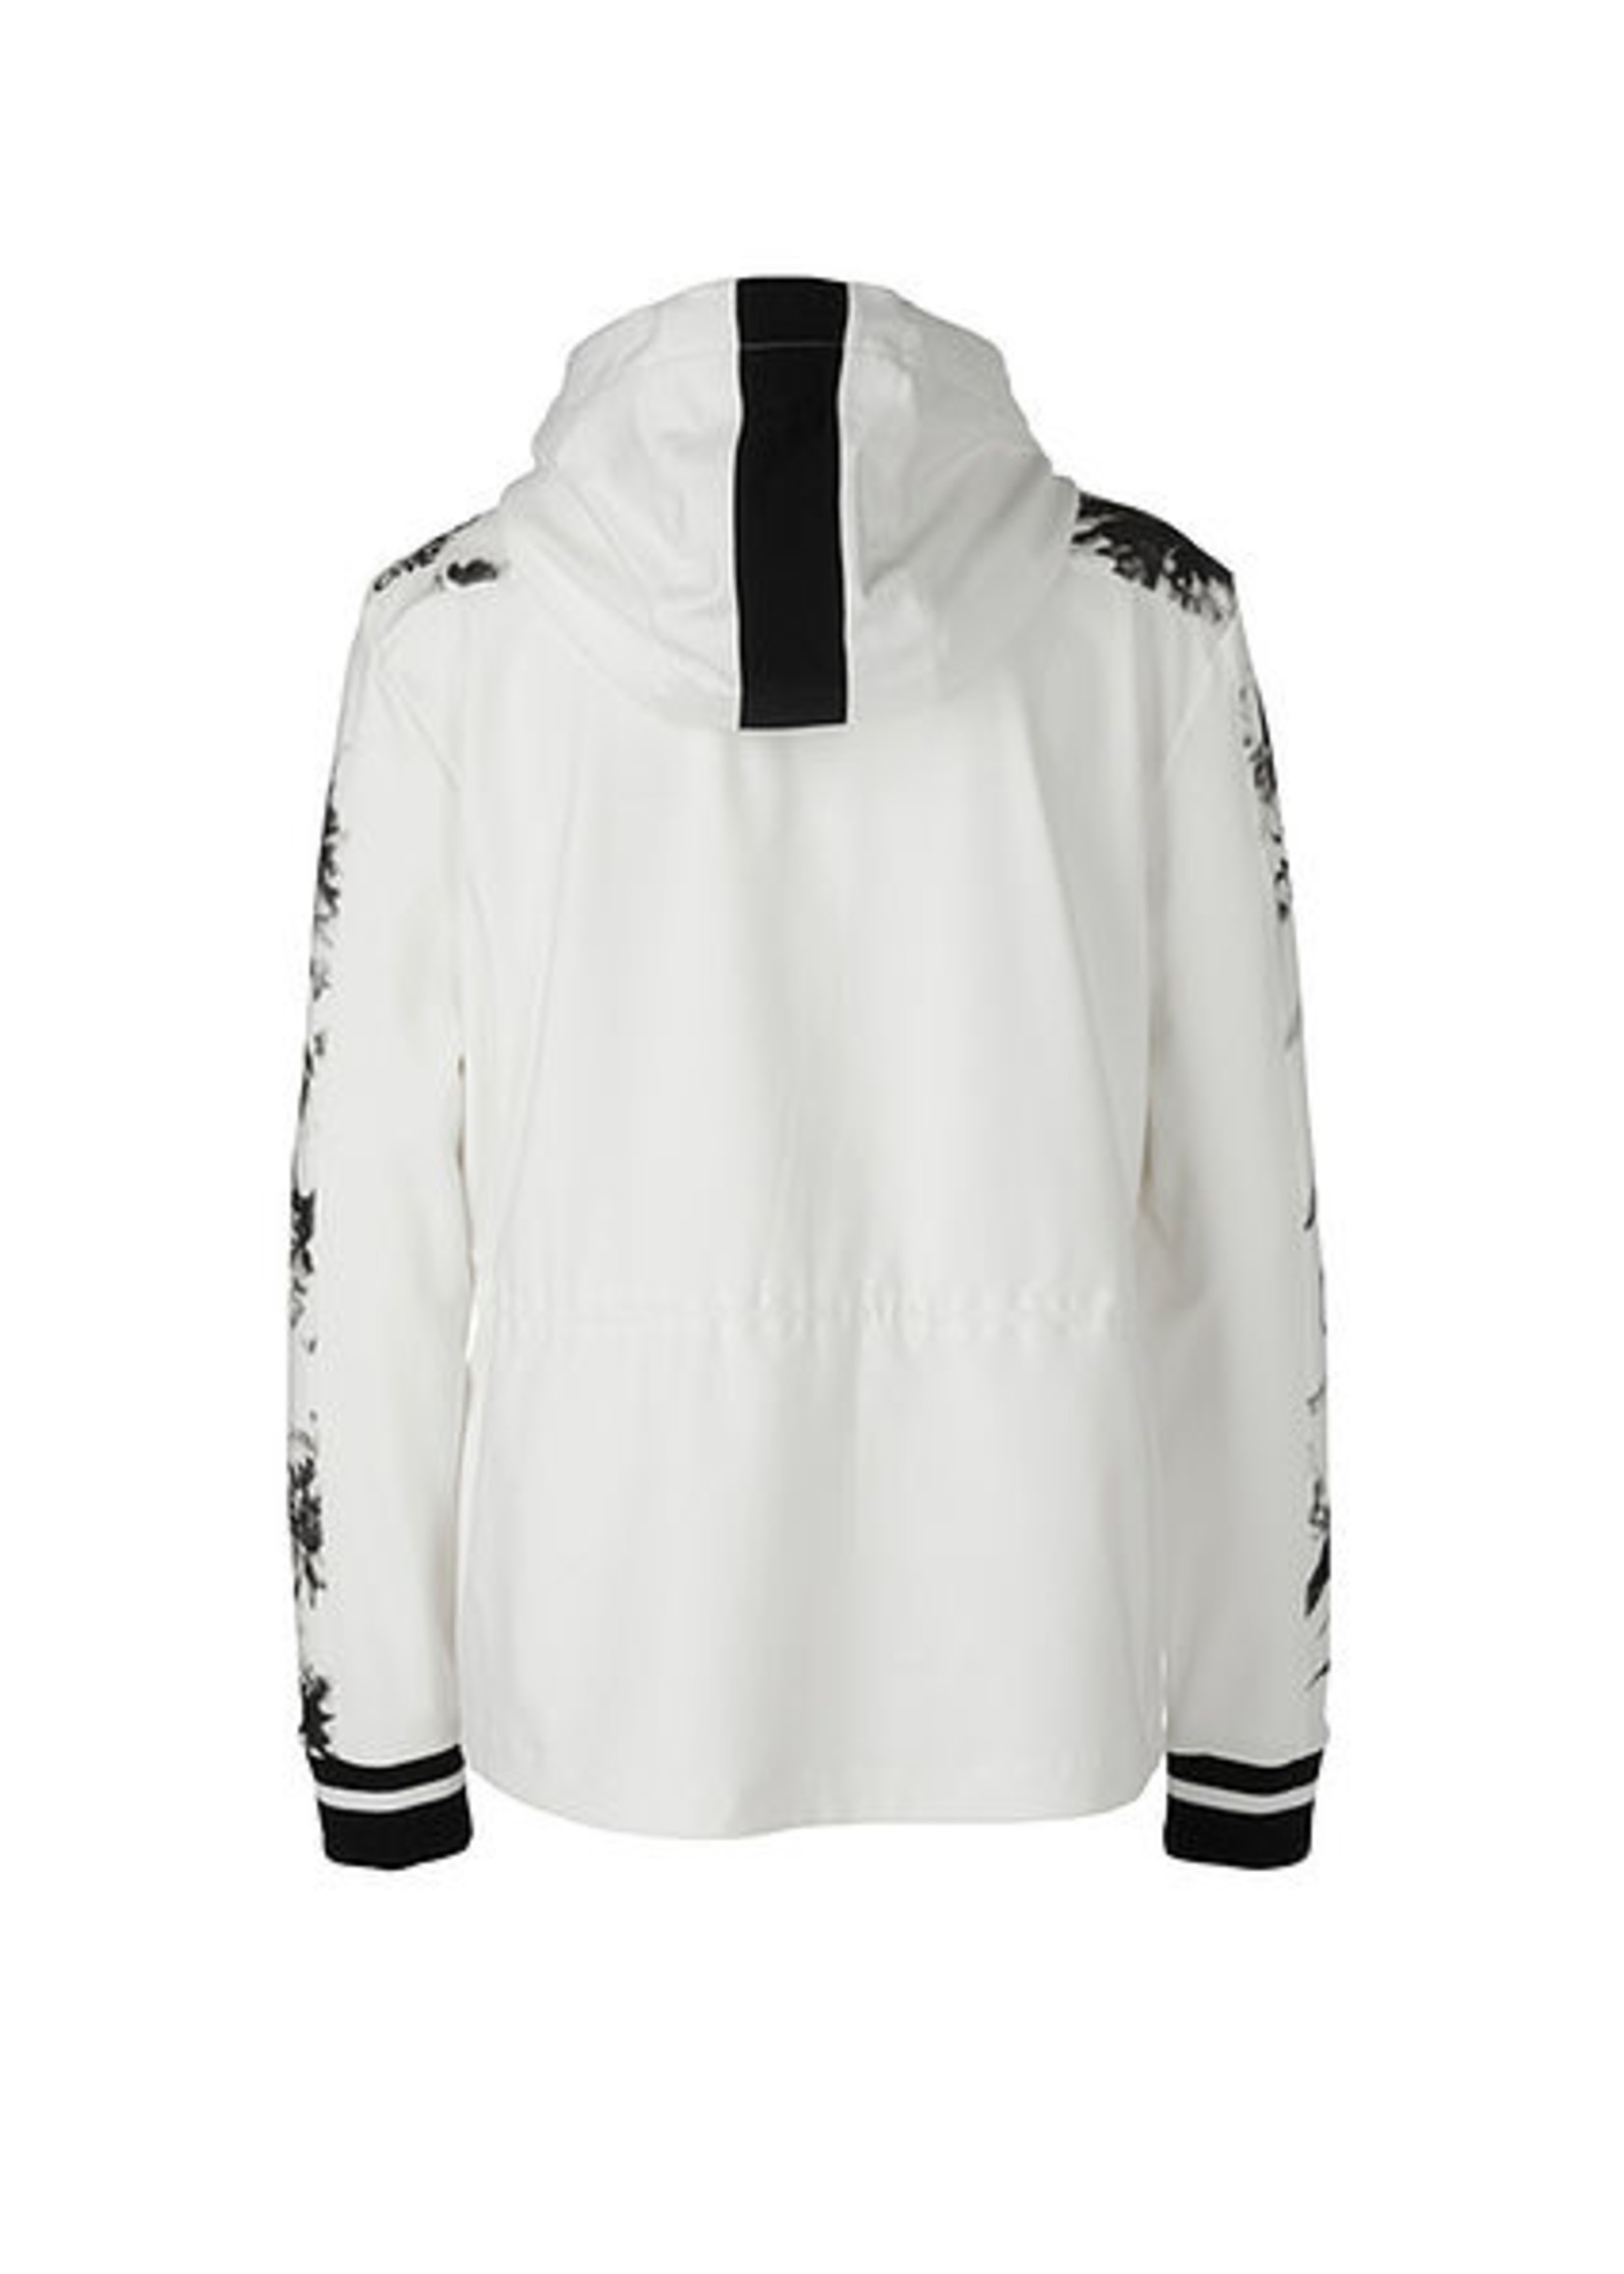 Marccain Sports Jack RS 31.53 J98 white and black